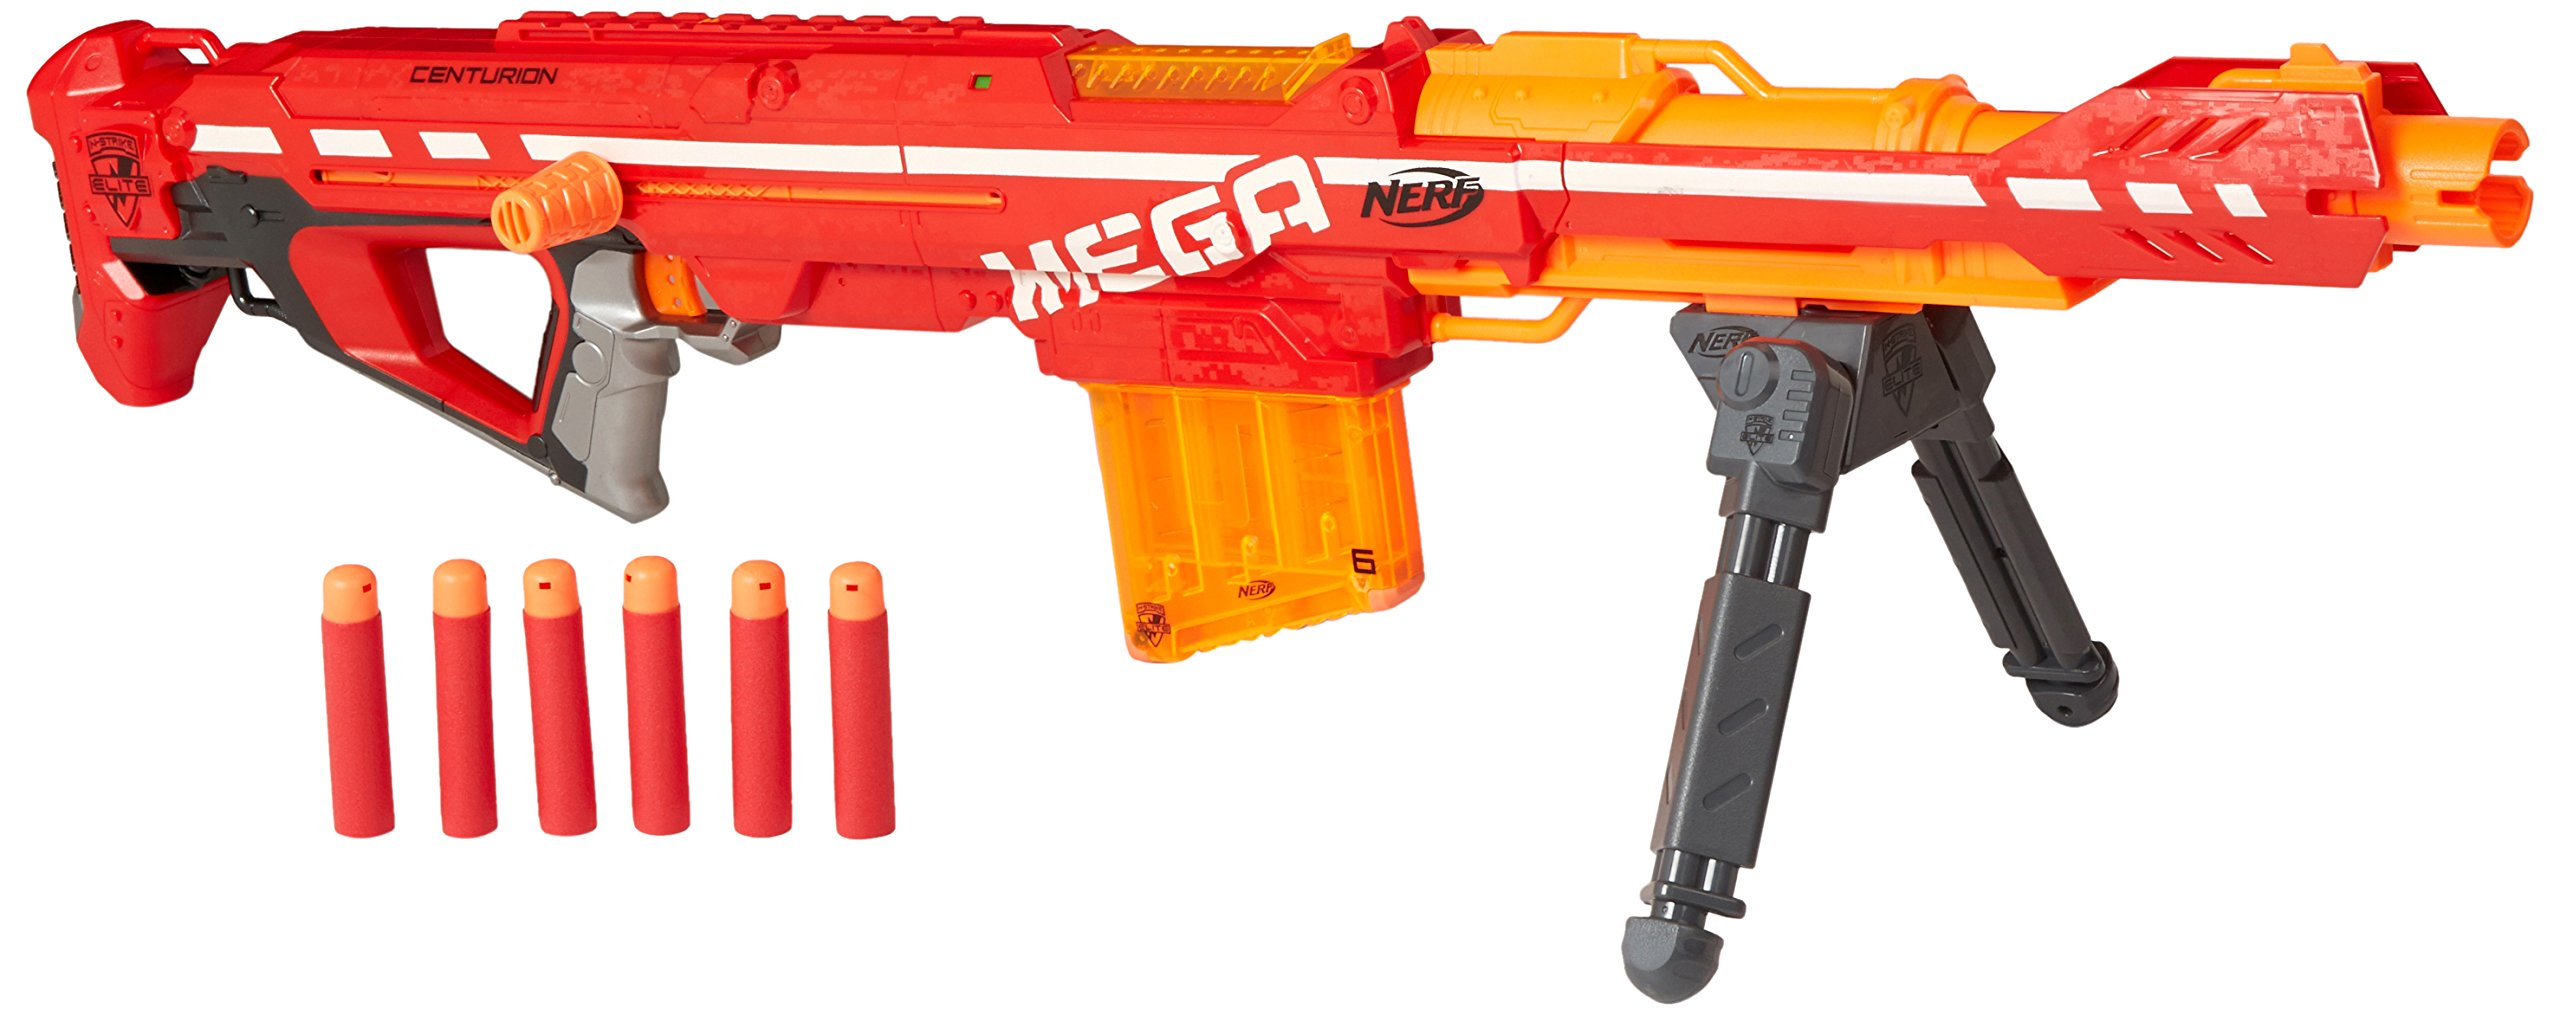 Nerf Mega Centurion Flying Disc